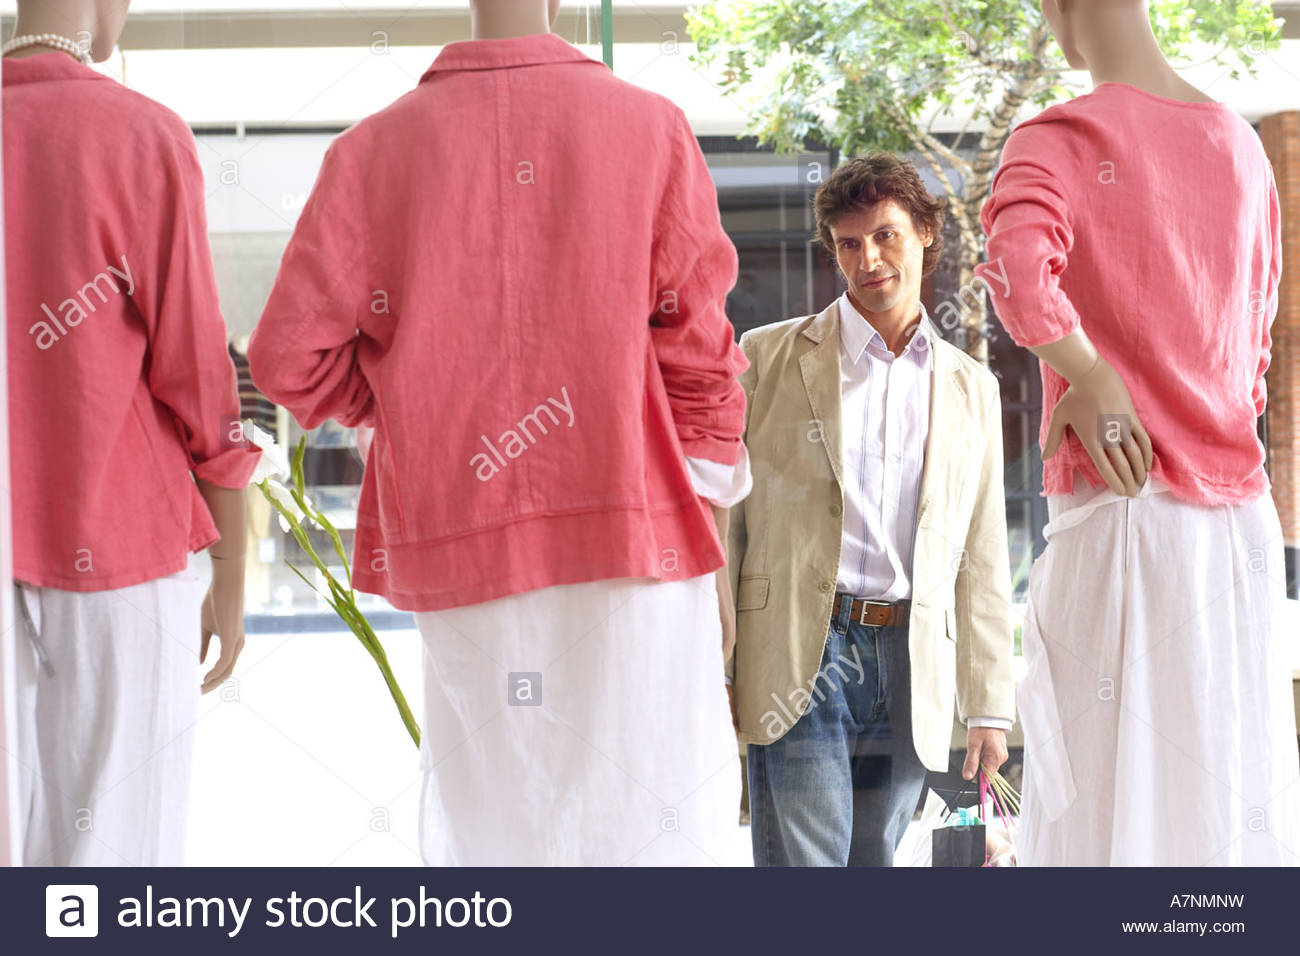 Man window shopping looking at three mannequins wearing pink tops and white skirts in clothes shop - Stock Image